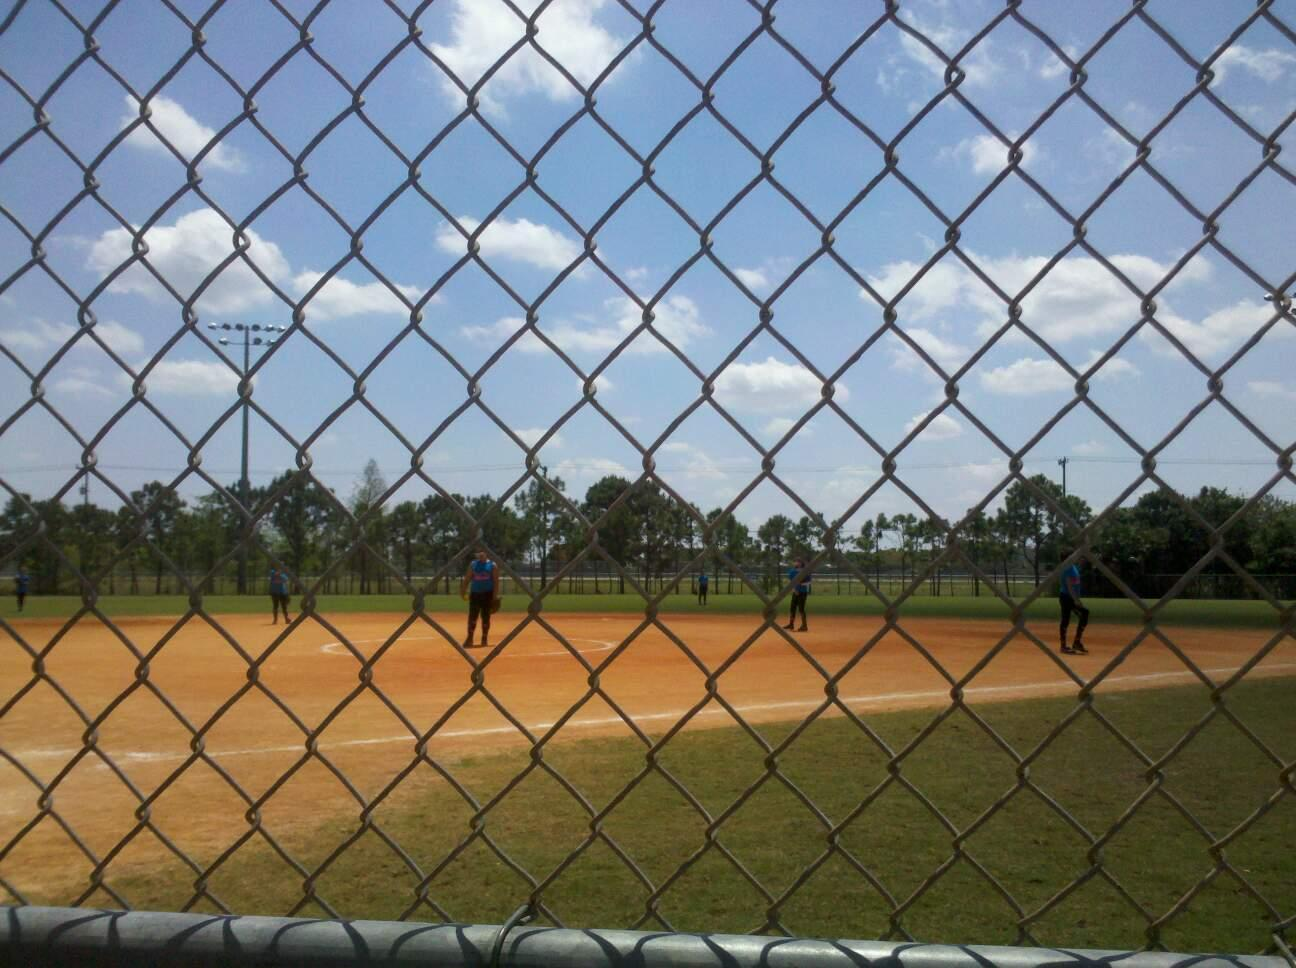 West  Boca Softball Section 1 Row 1 Seat 1